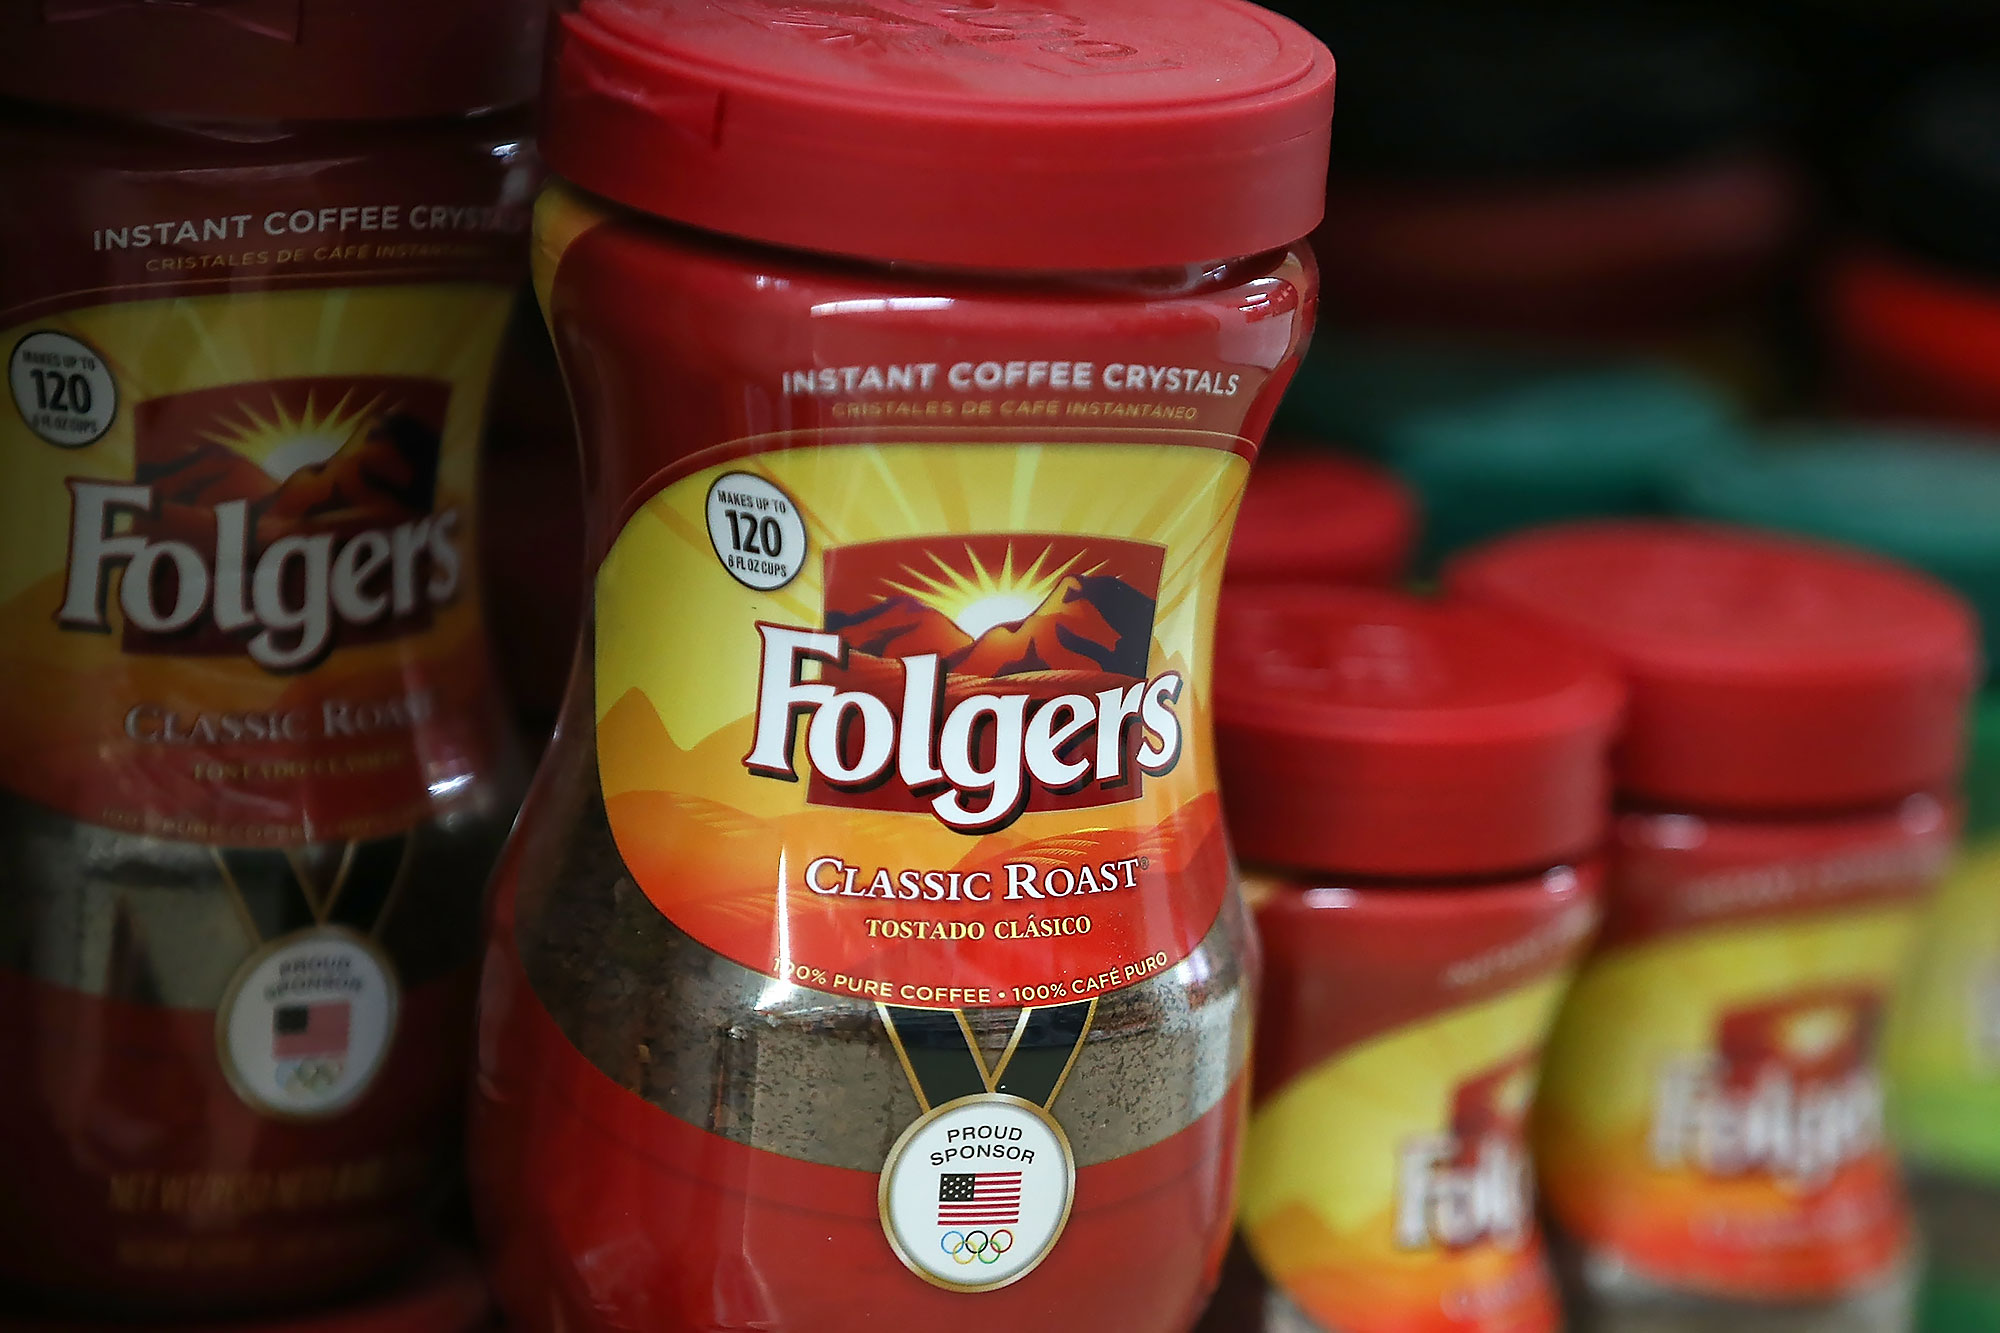 Packages of Folgers coffee are displayed on a shelf at a grocery store